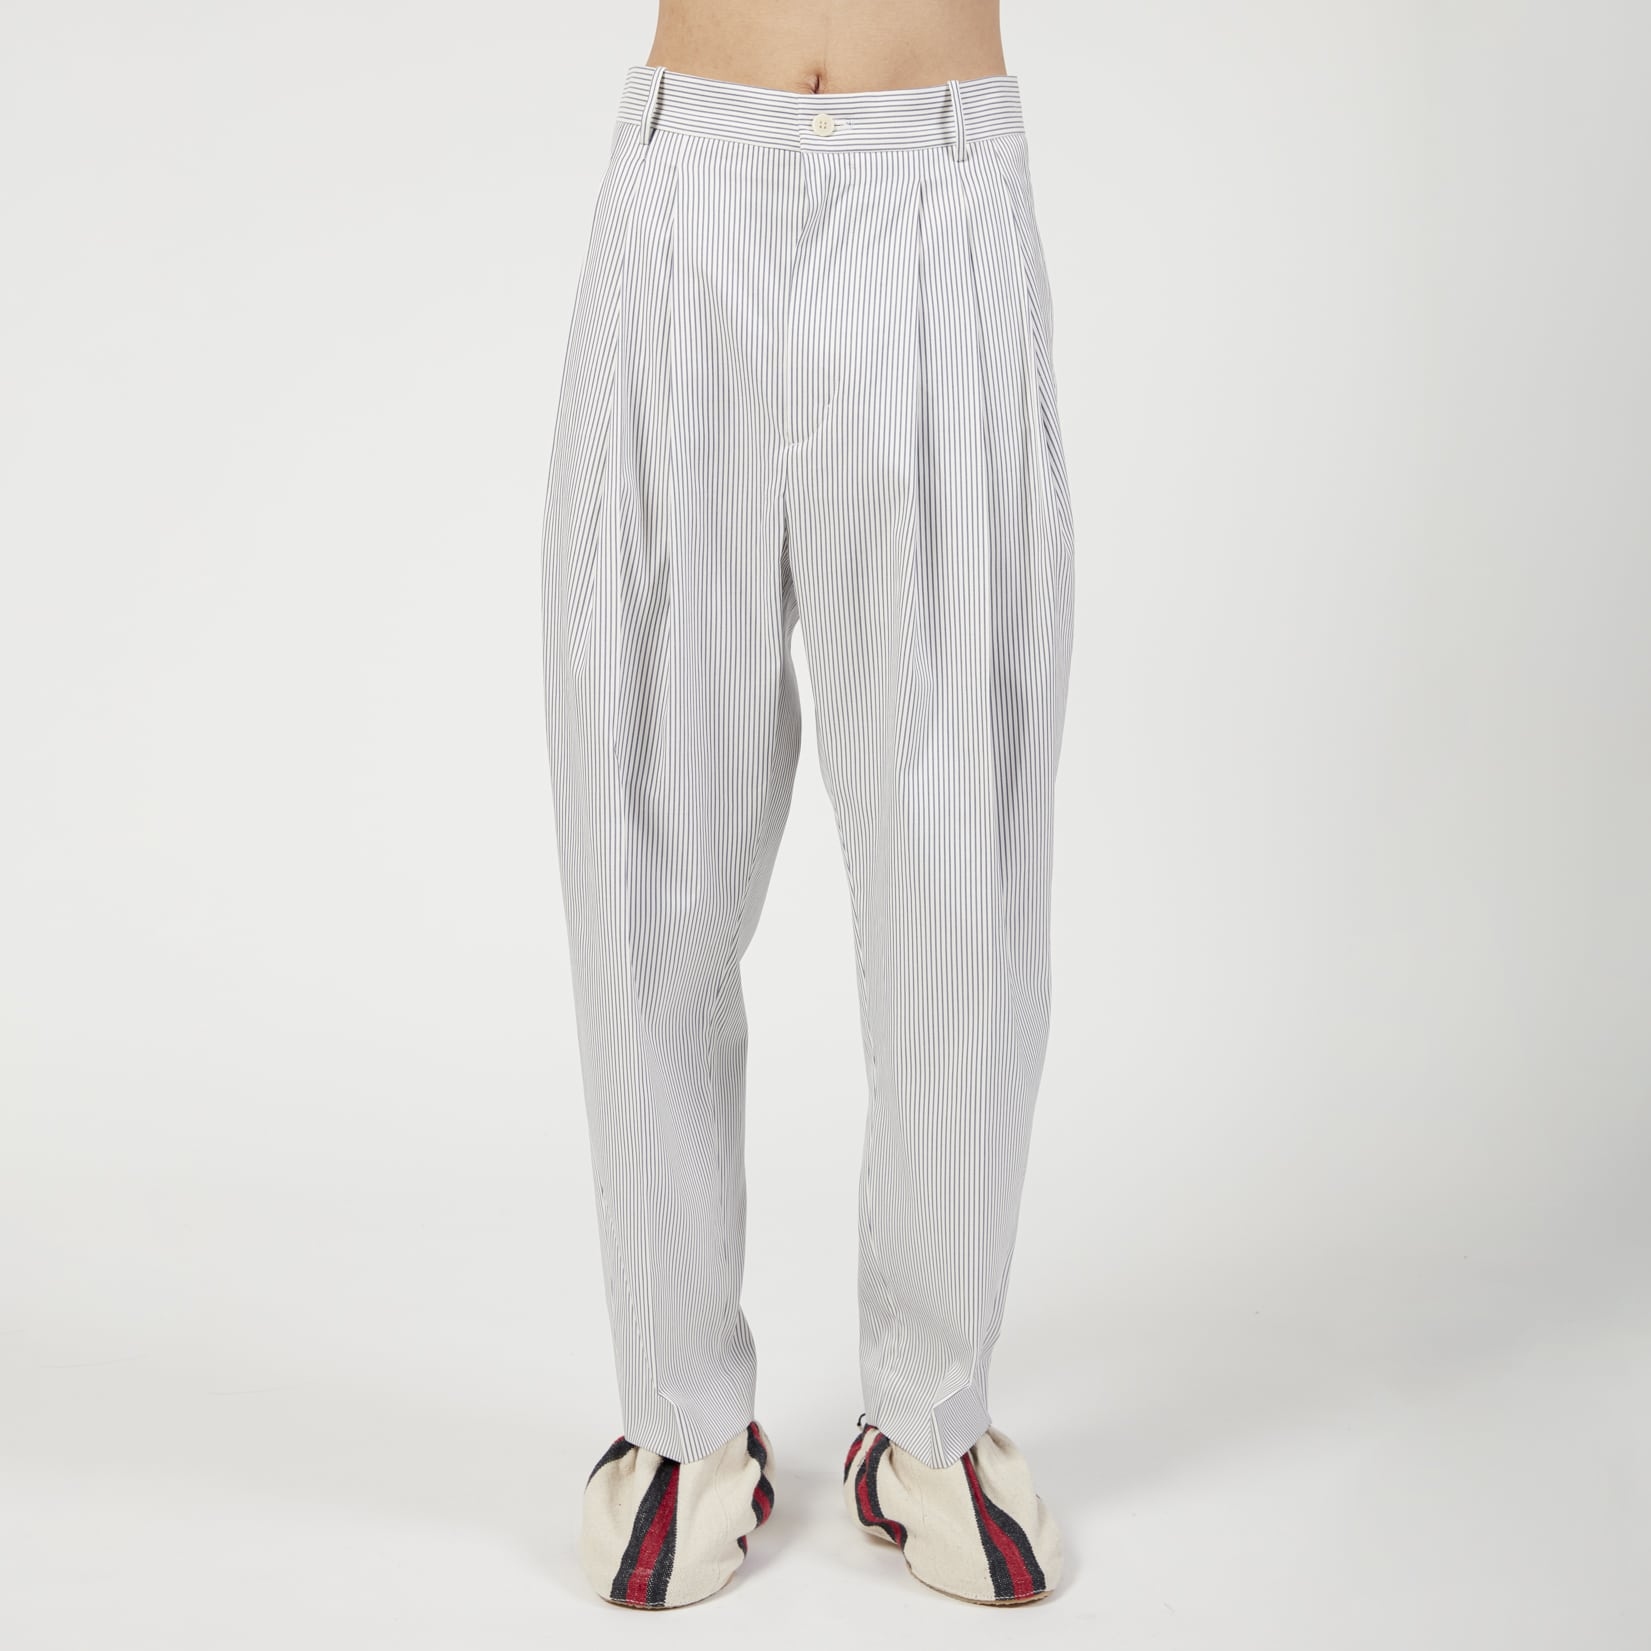 Hed Mayner 4 Pleat Pant